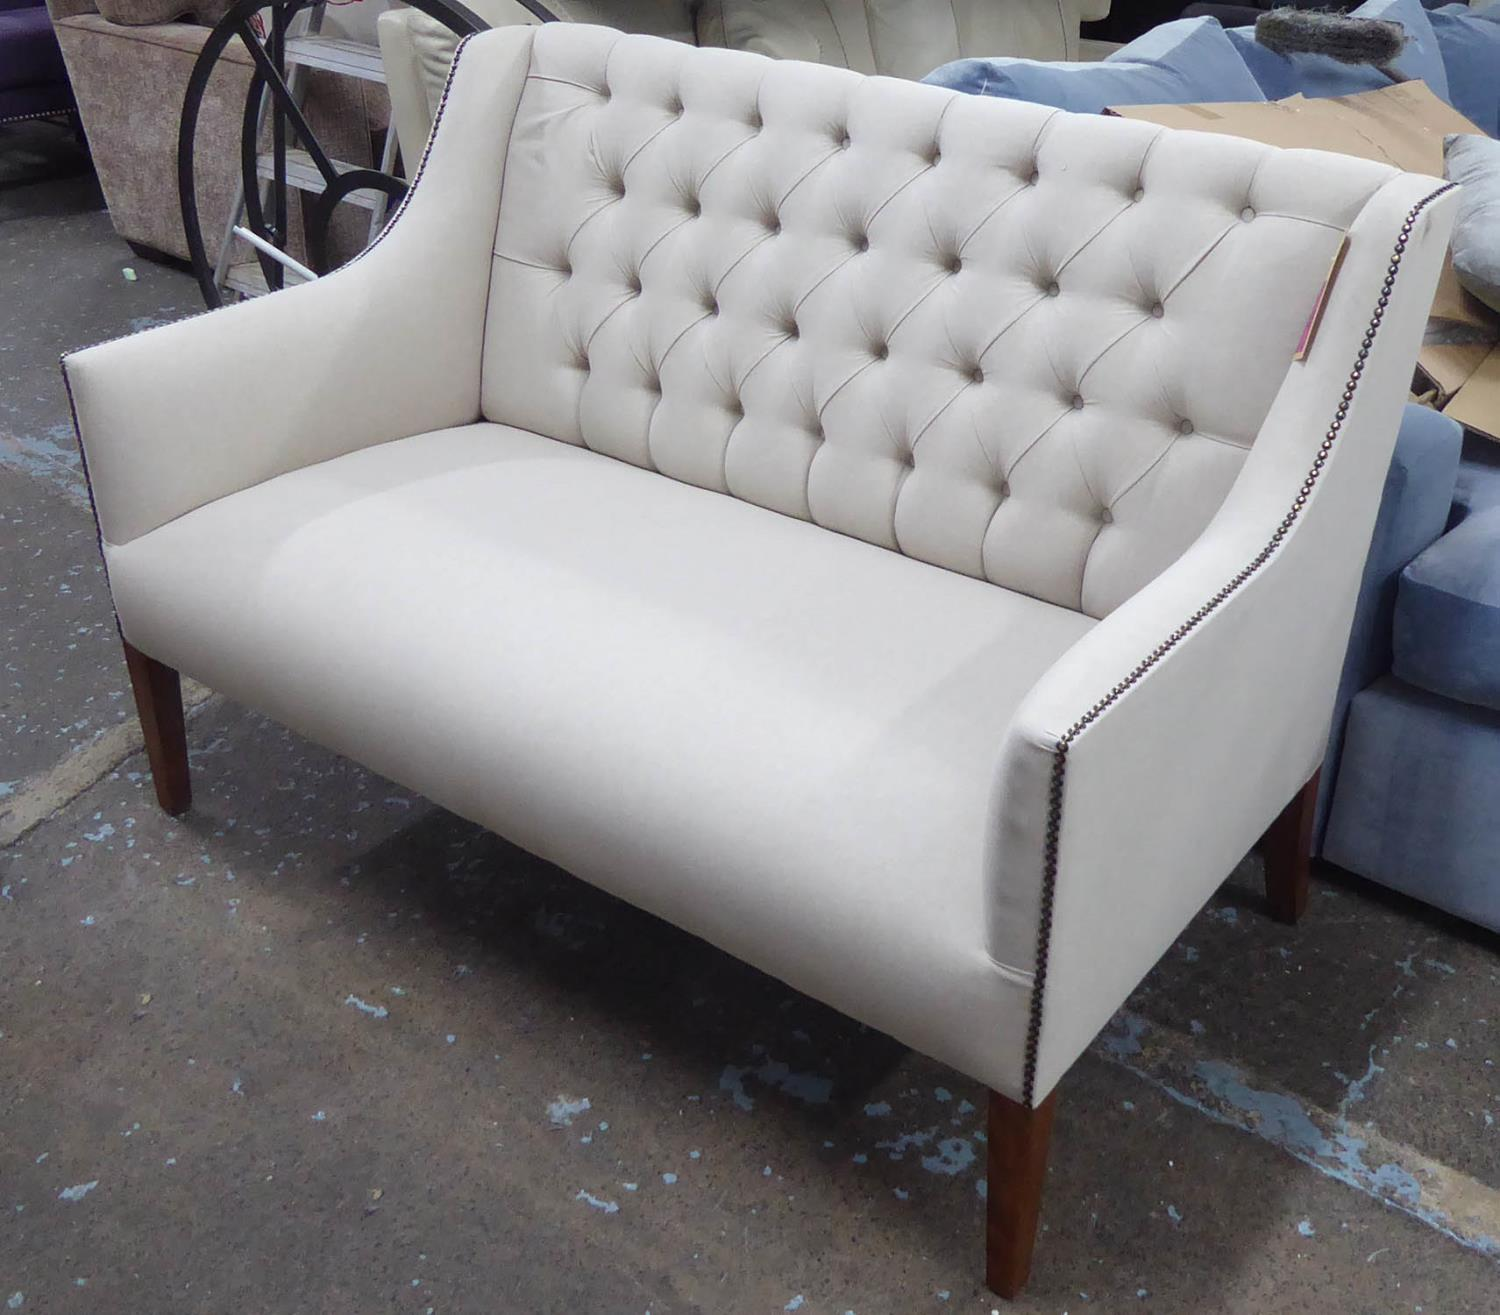 SOFA, contemporary buttoned back finish, neutral upholstery, 131cm W.